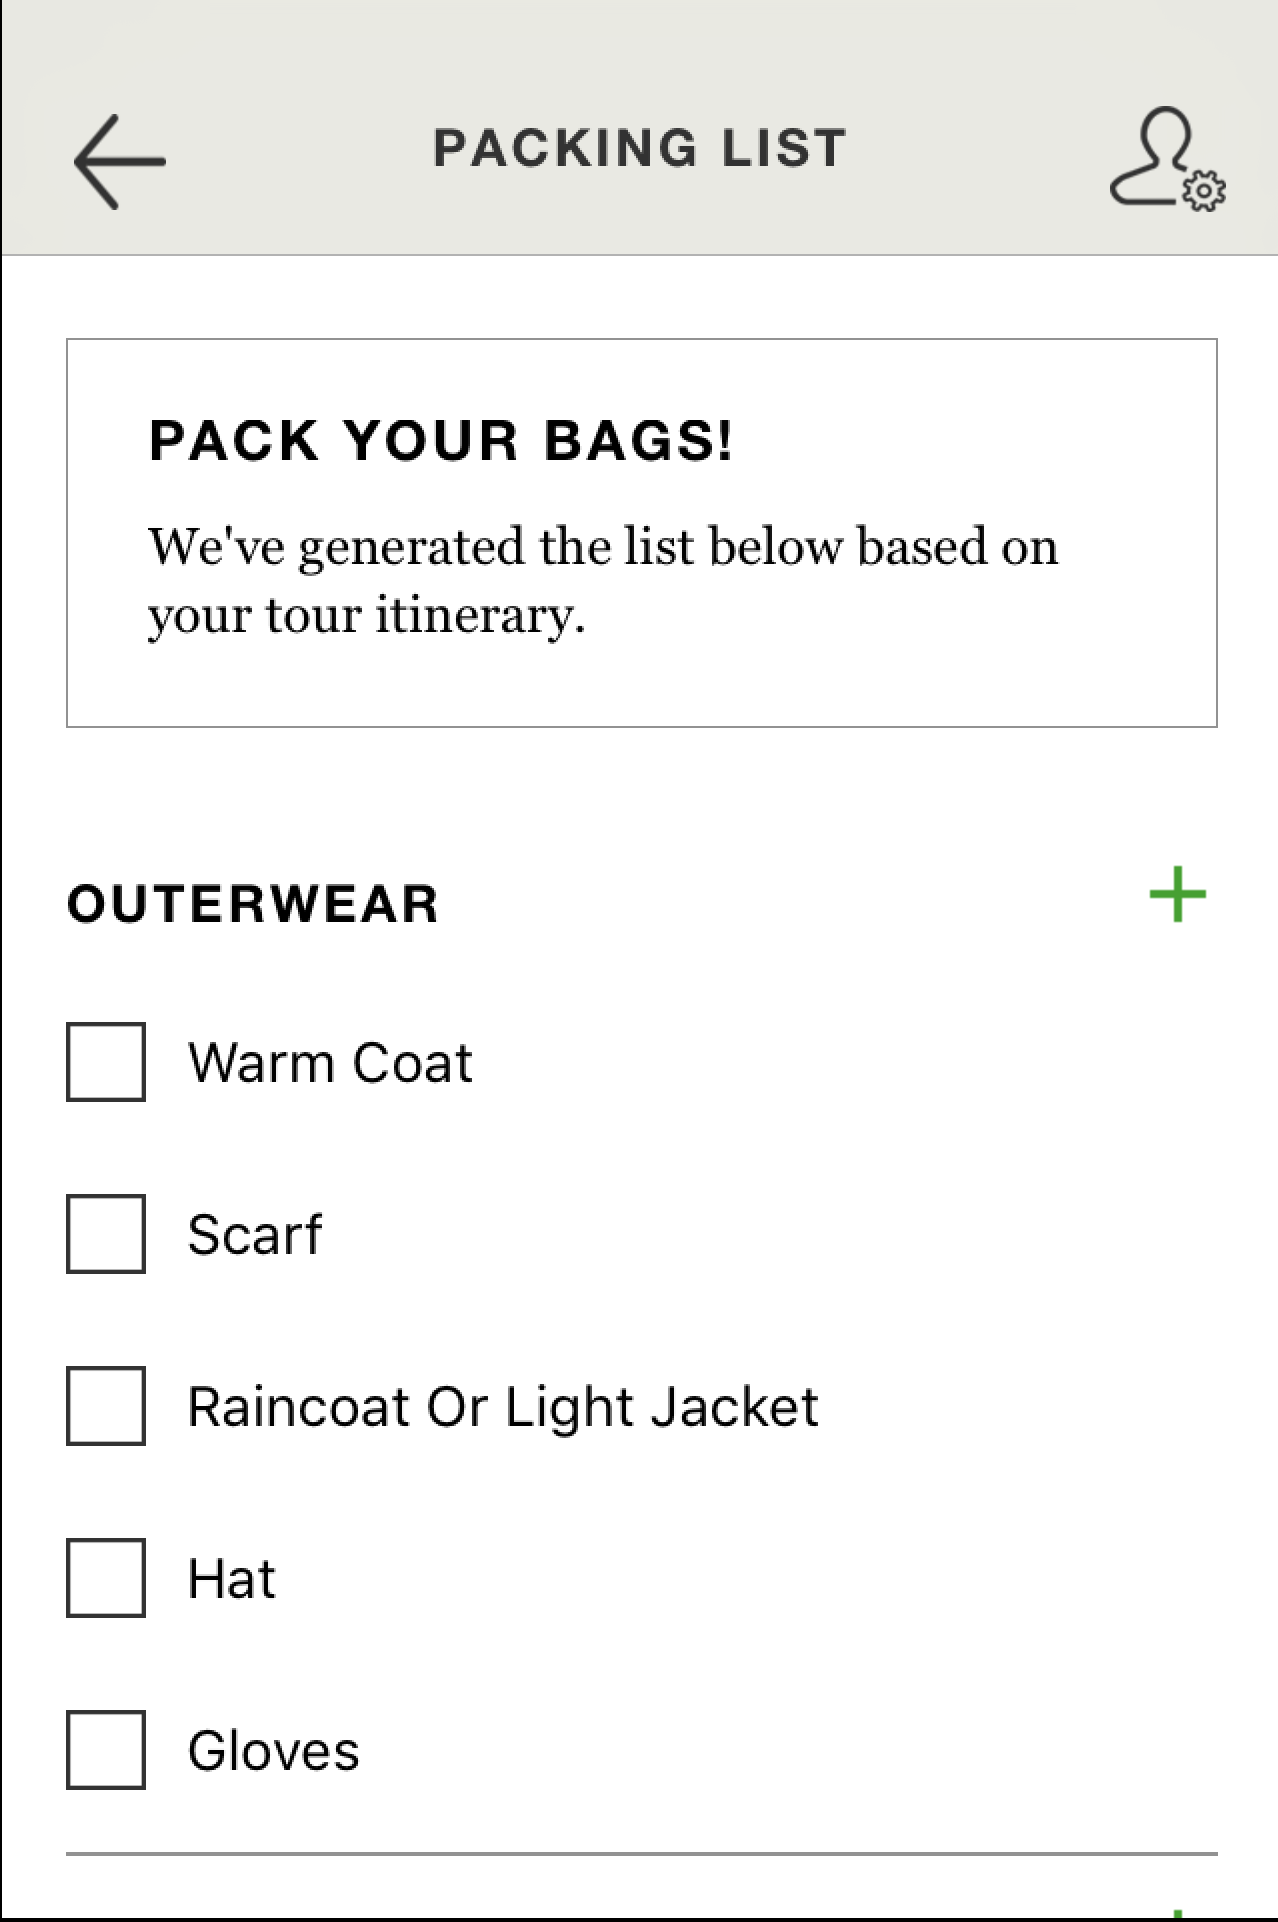 Packing list (click to enlarge)